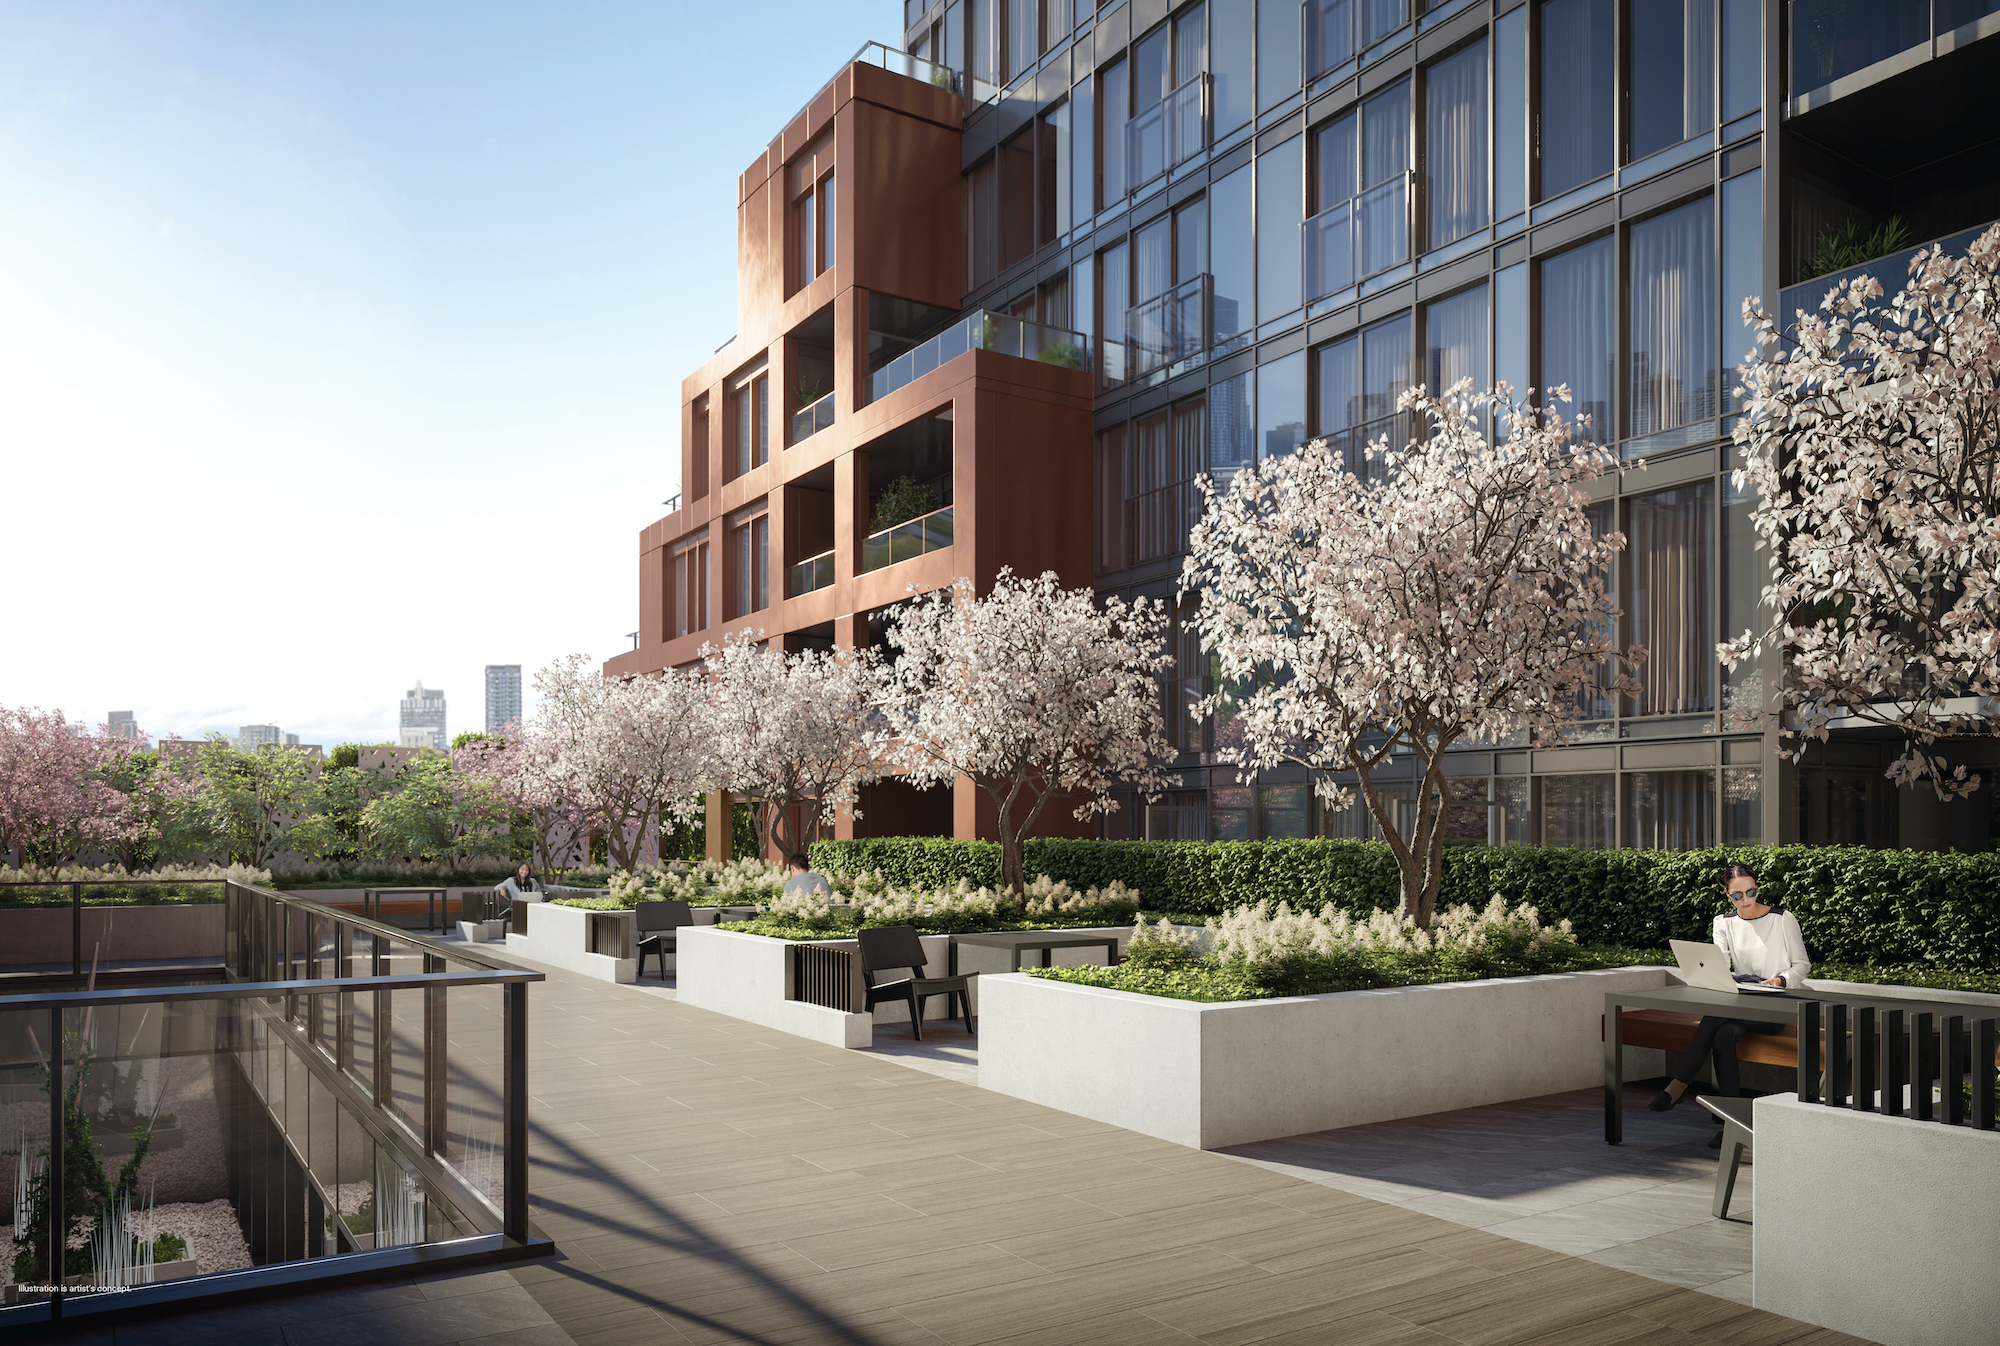 Rendering of 28 Eastern Condos courtyard terrace.